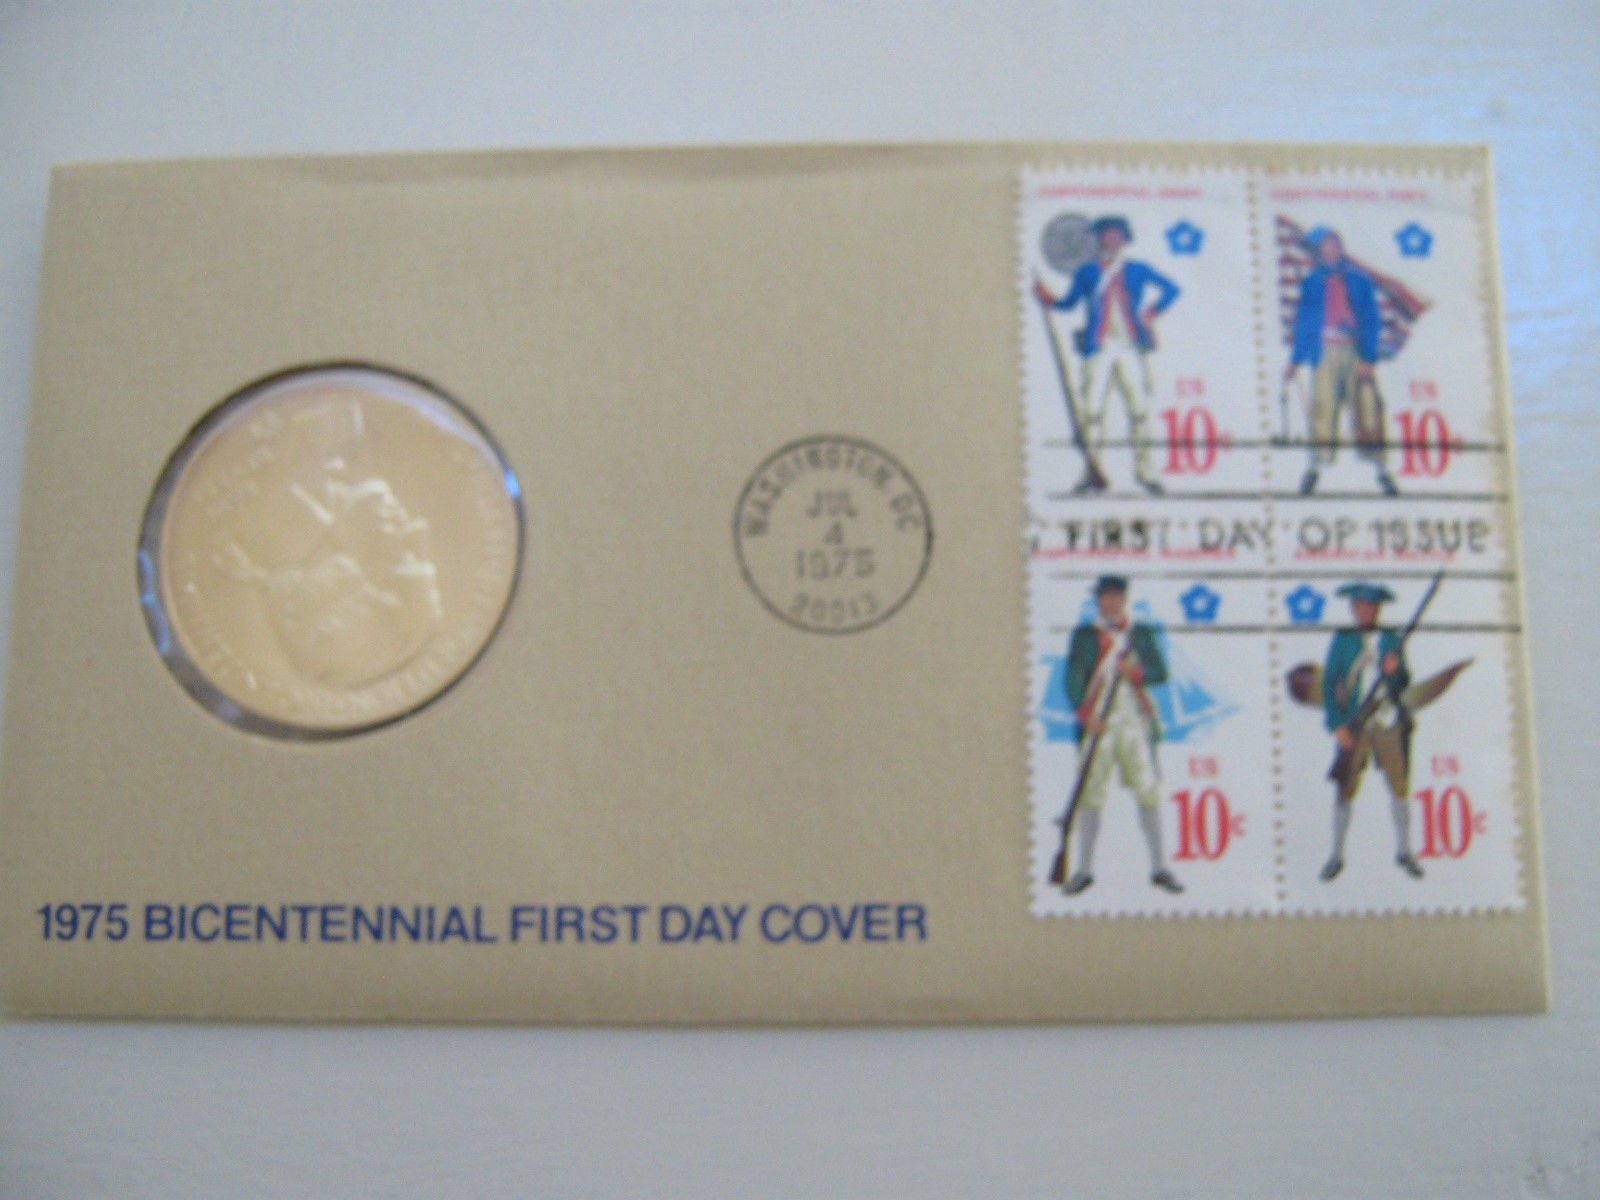 1975 Bicentennial First Day Cover Commemorative Stamp and Medal with Paul Revere - $12.00